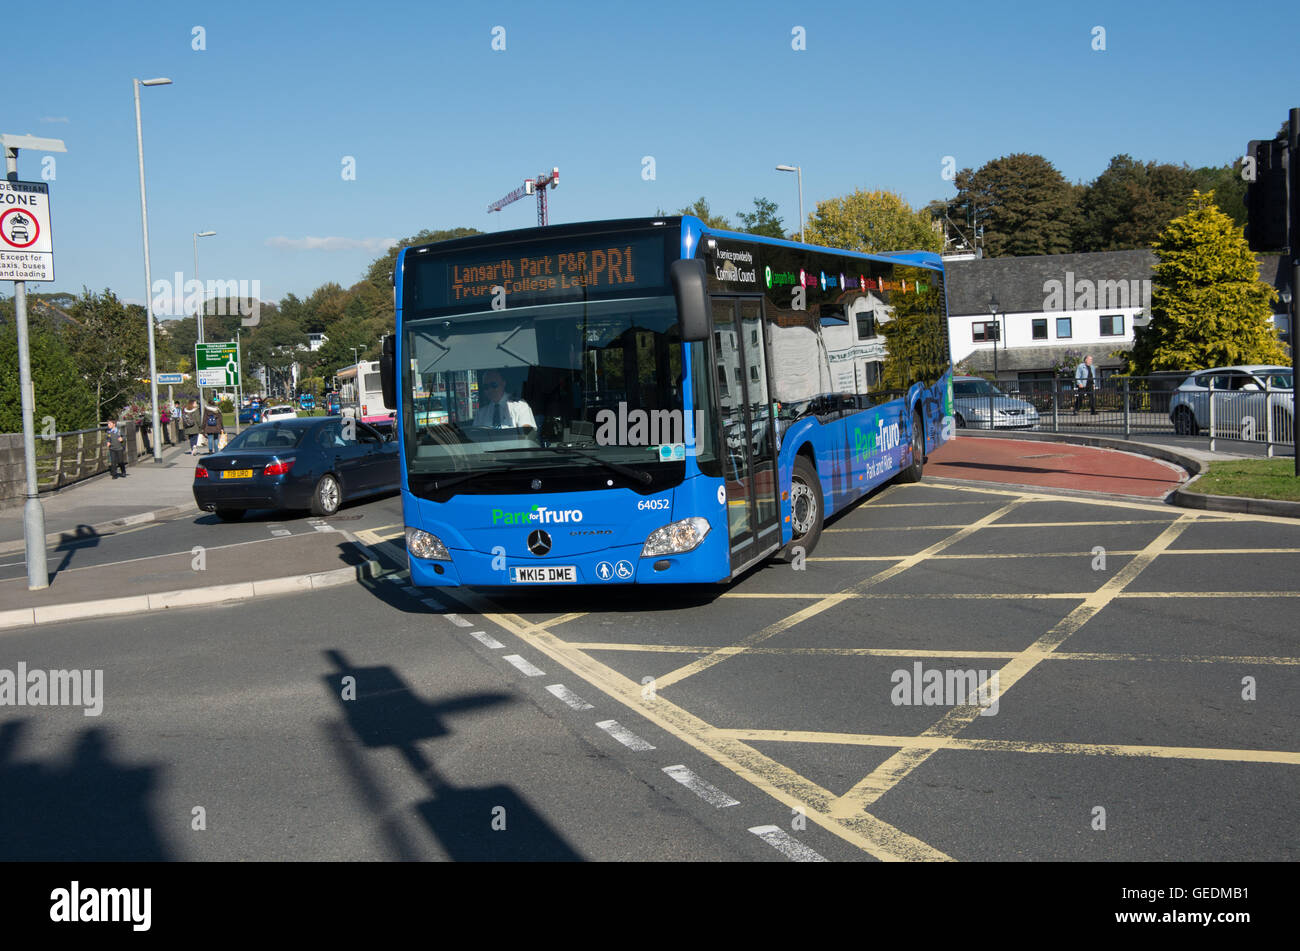 A First Group Mercedes-Benz Citaro working on the Truro park & ride service PR1 to Langarth Park P&R. - Stock Image